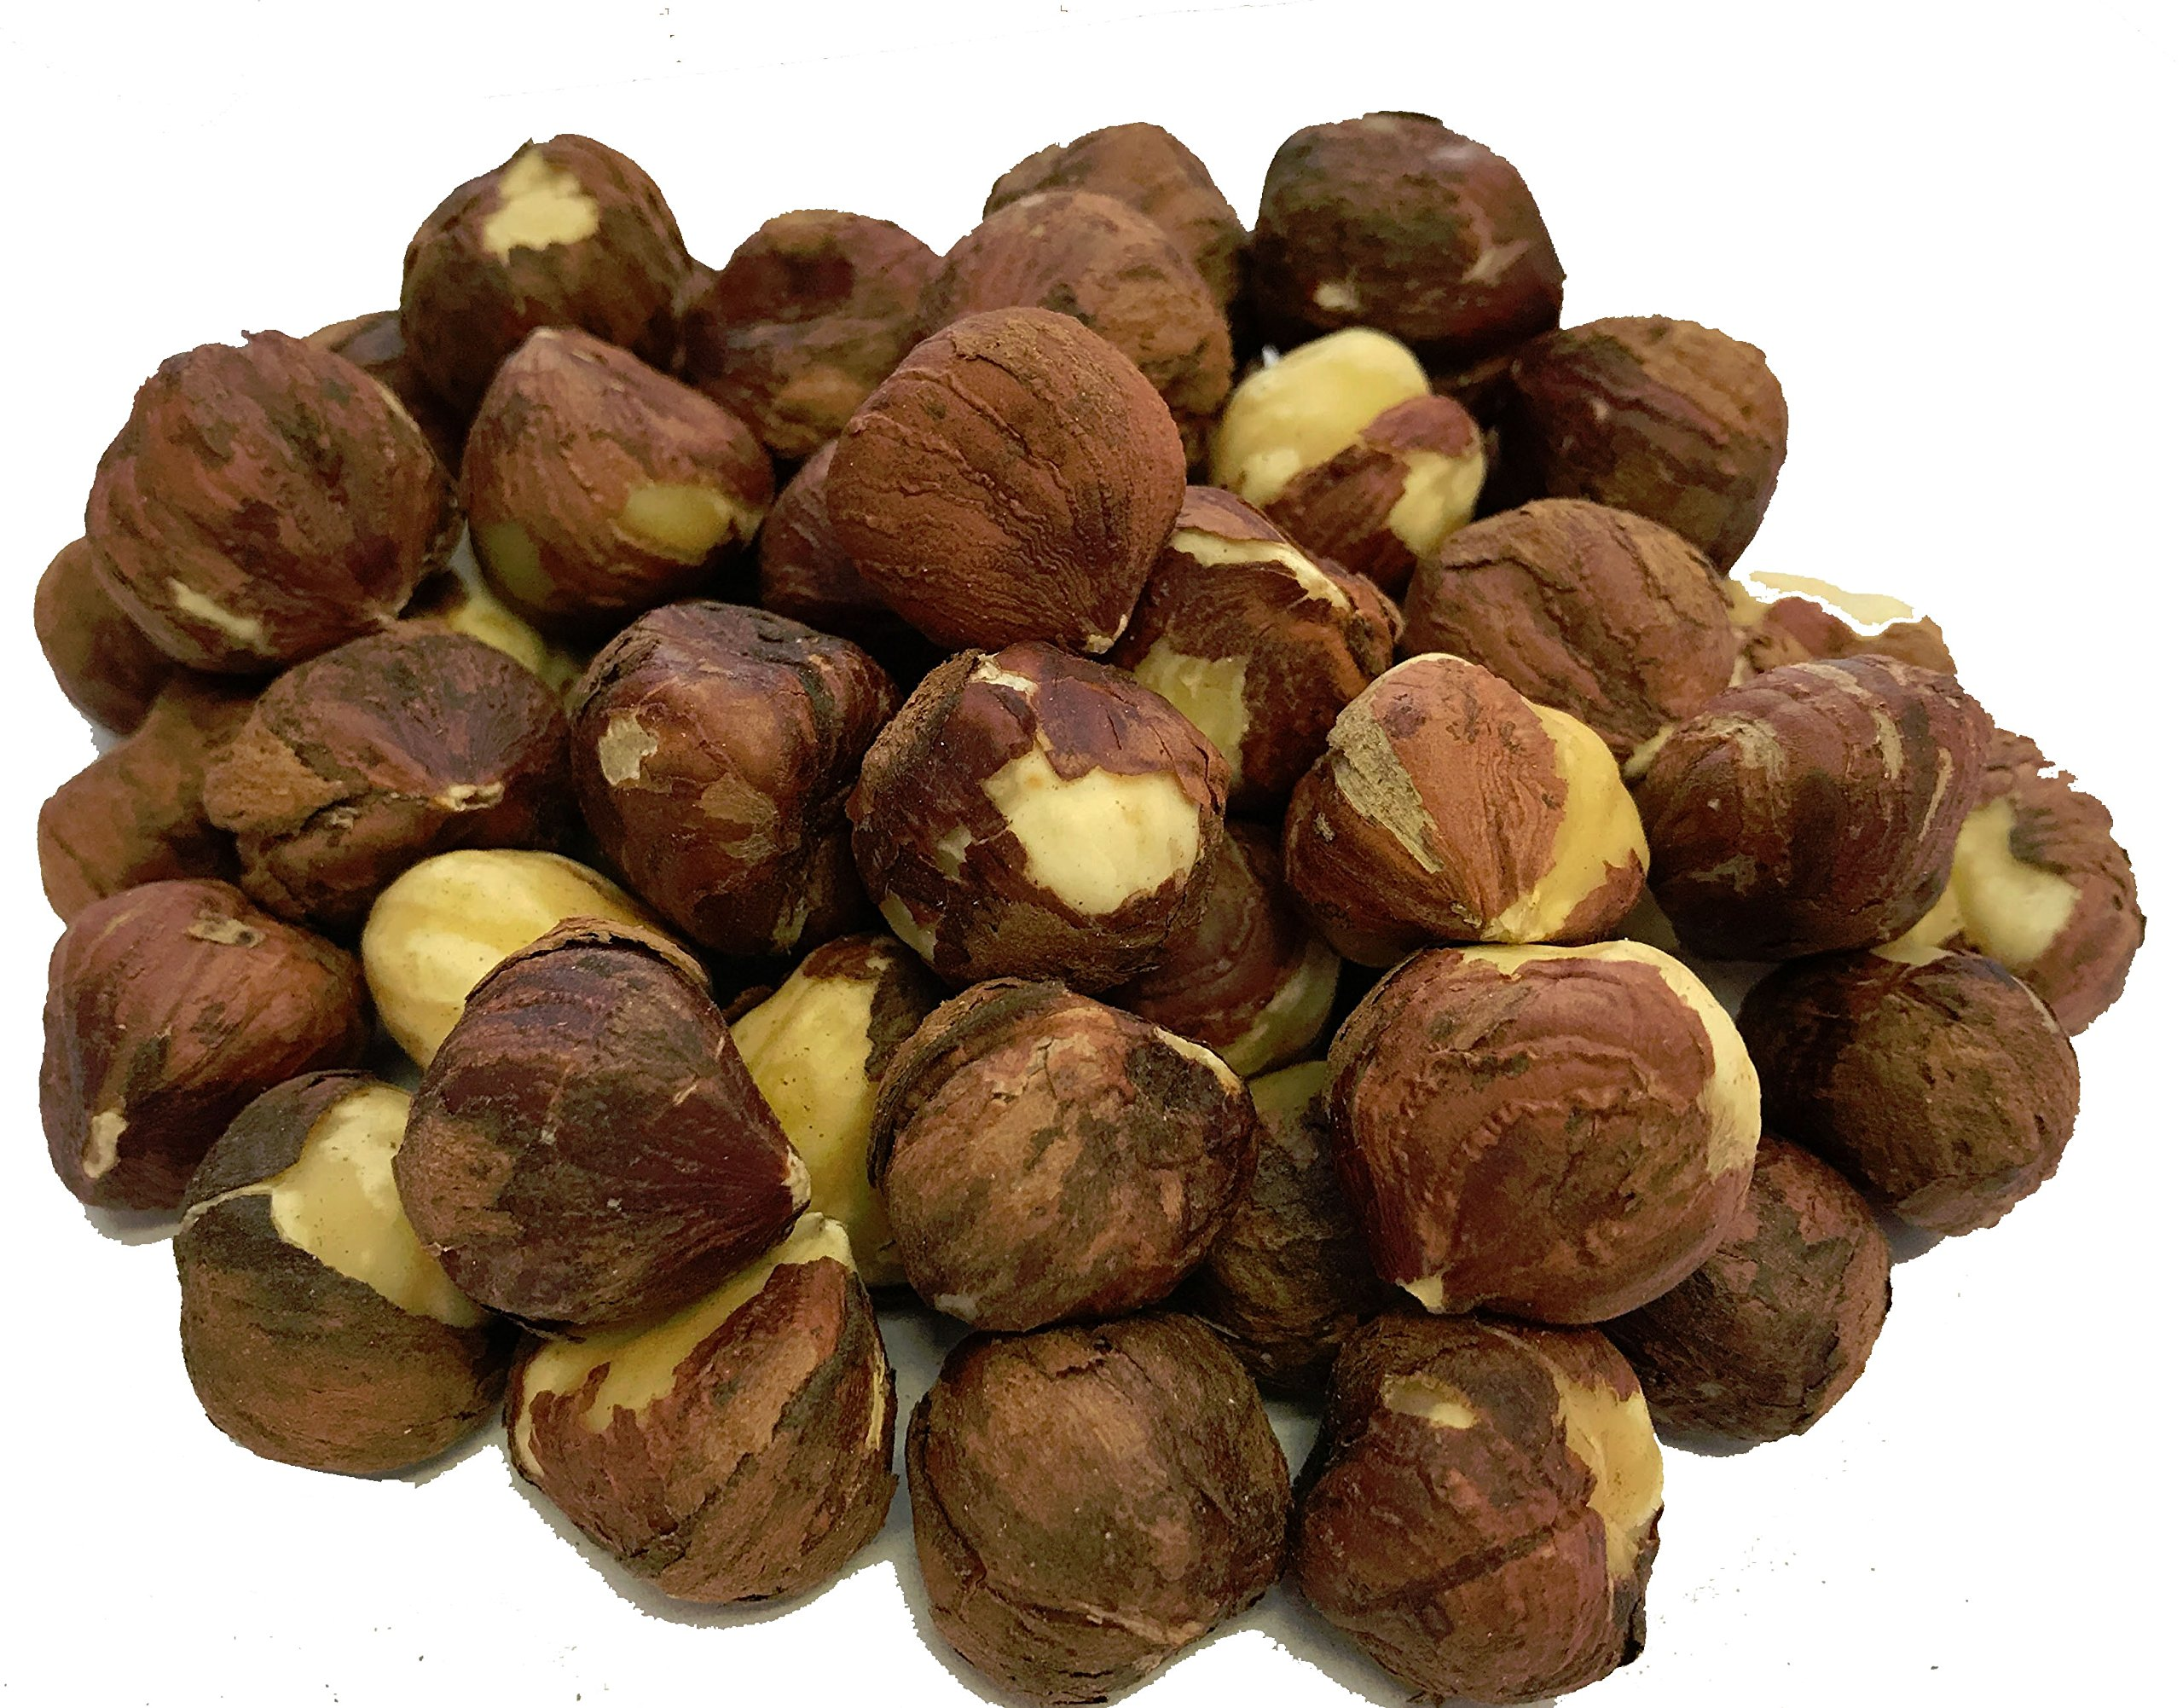 NUTS U.S. - Oregon Hazelnuts (Filberts) | Raw and Unsalted | Steam Pasteurized and NON-GMO | No Shell - Just Kernels | JUMBO SIZE | Packed in Resealable Bags!!! (4 LB) by NUTS U.S.